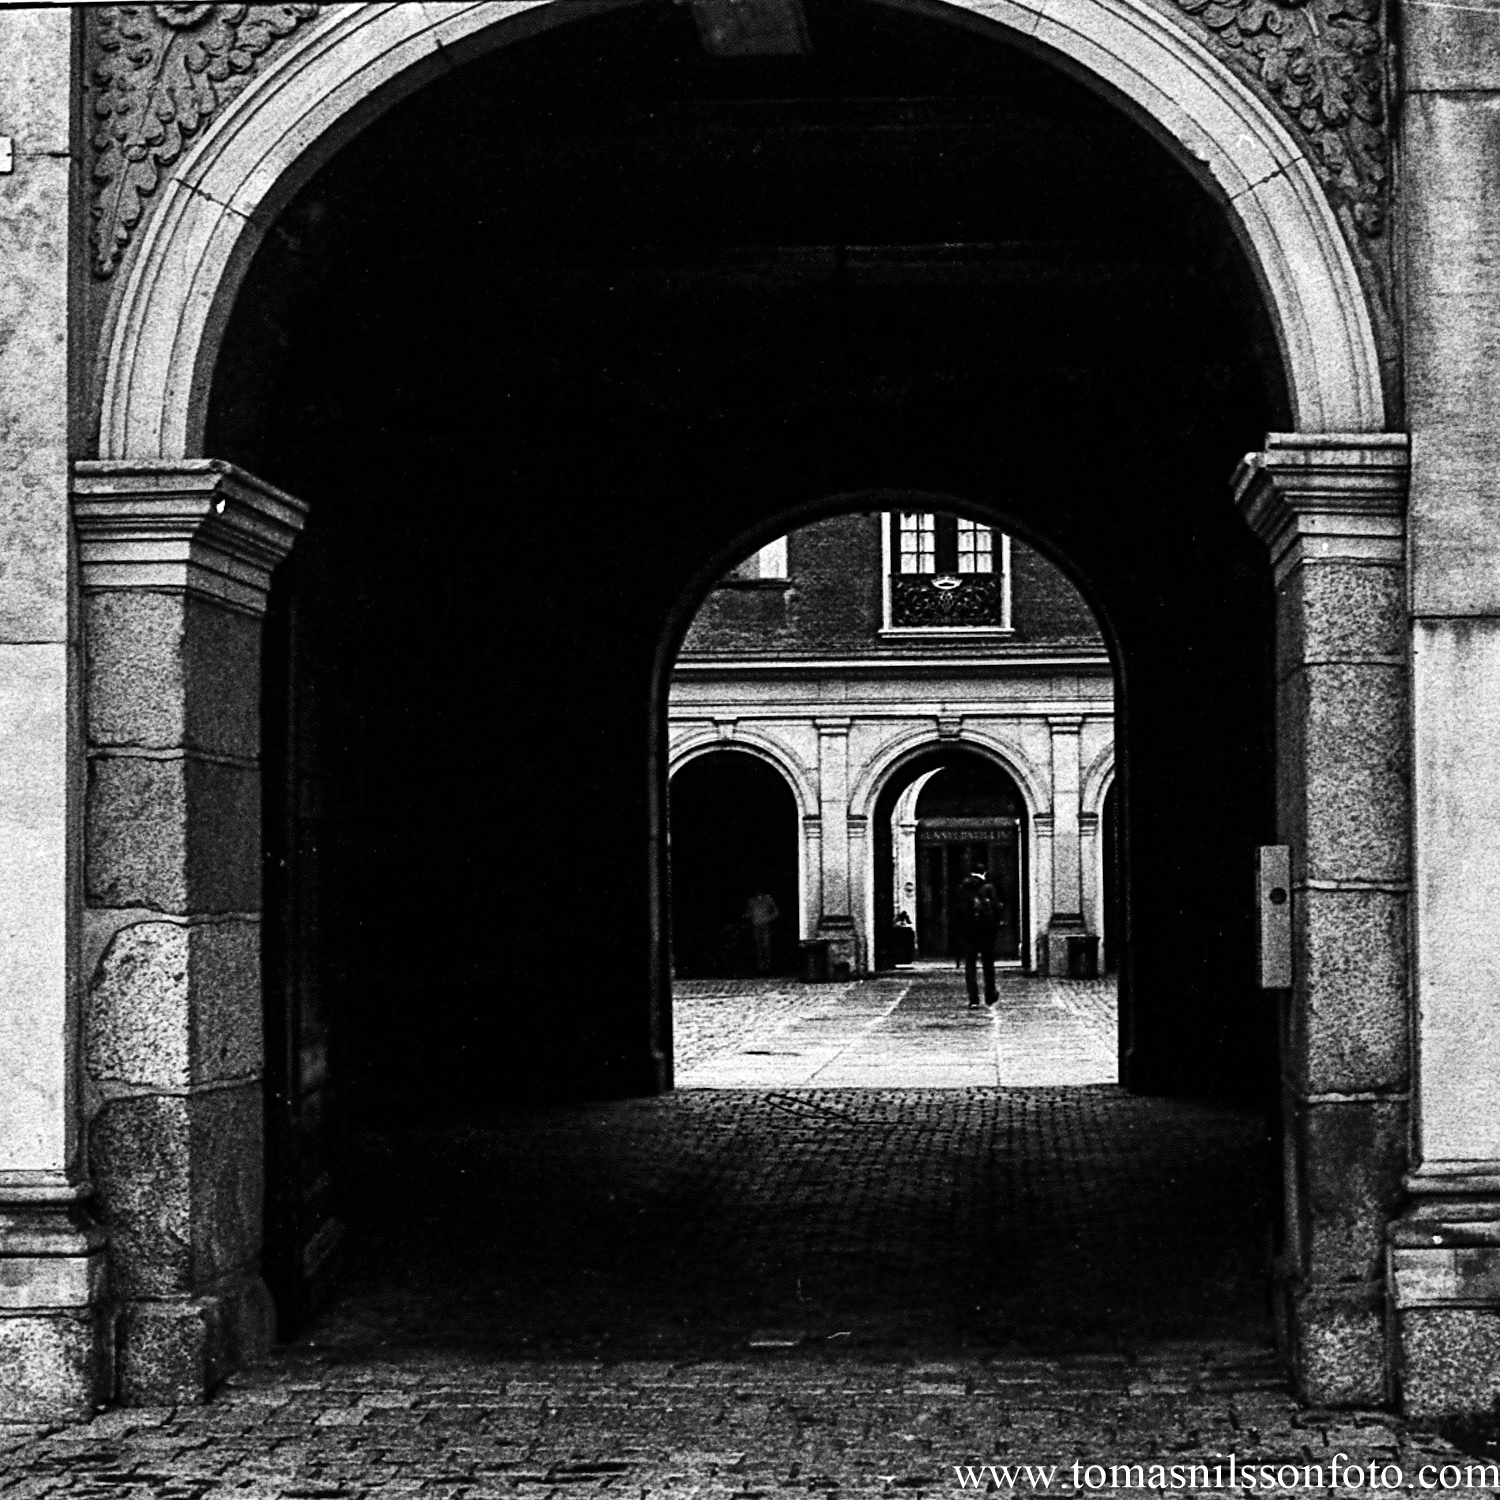 Day 127 - May 7: Arches